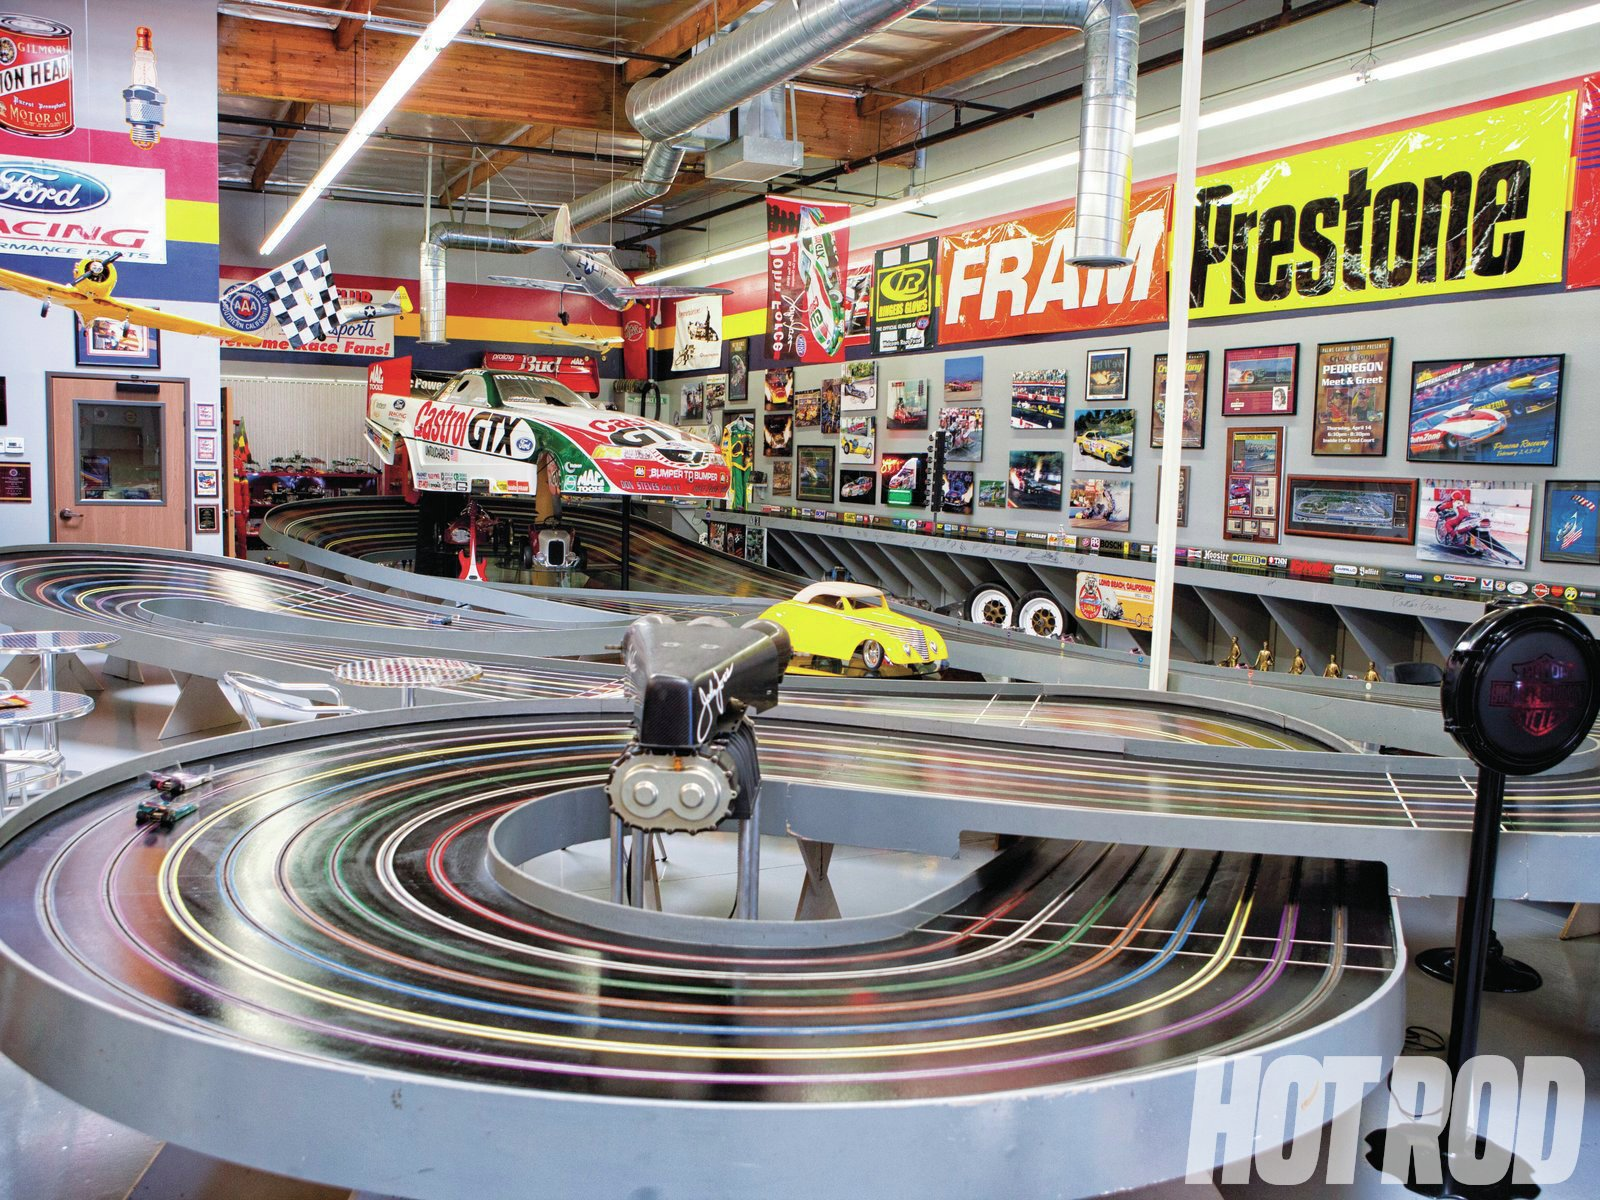 We would happily get rid of all our living-room furniture if we could replace it with this 155-foot Euro King slot-car track. Jim says the fast cars will make a lap in less than two seconds. The dragstrip in the back ain't bad, either.